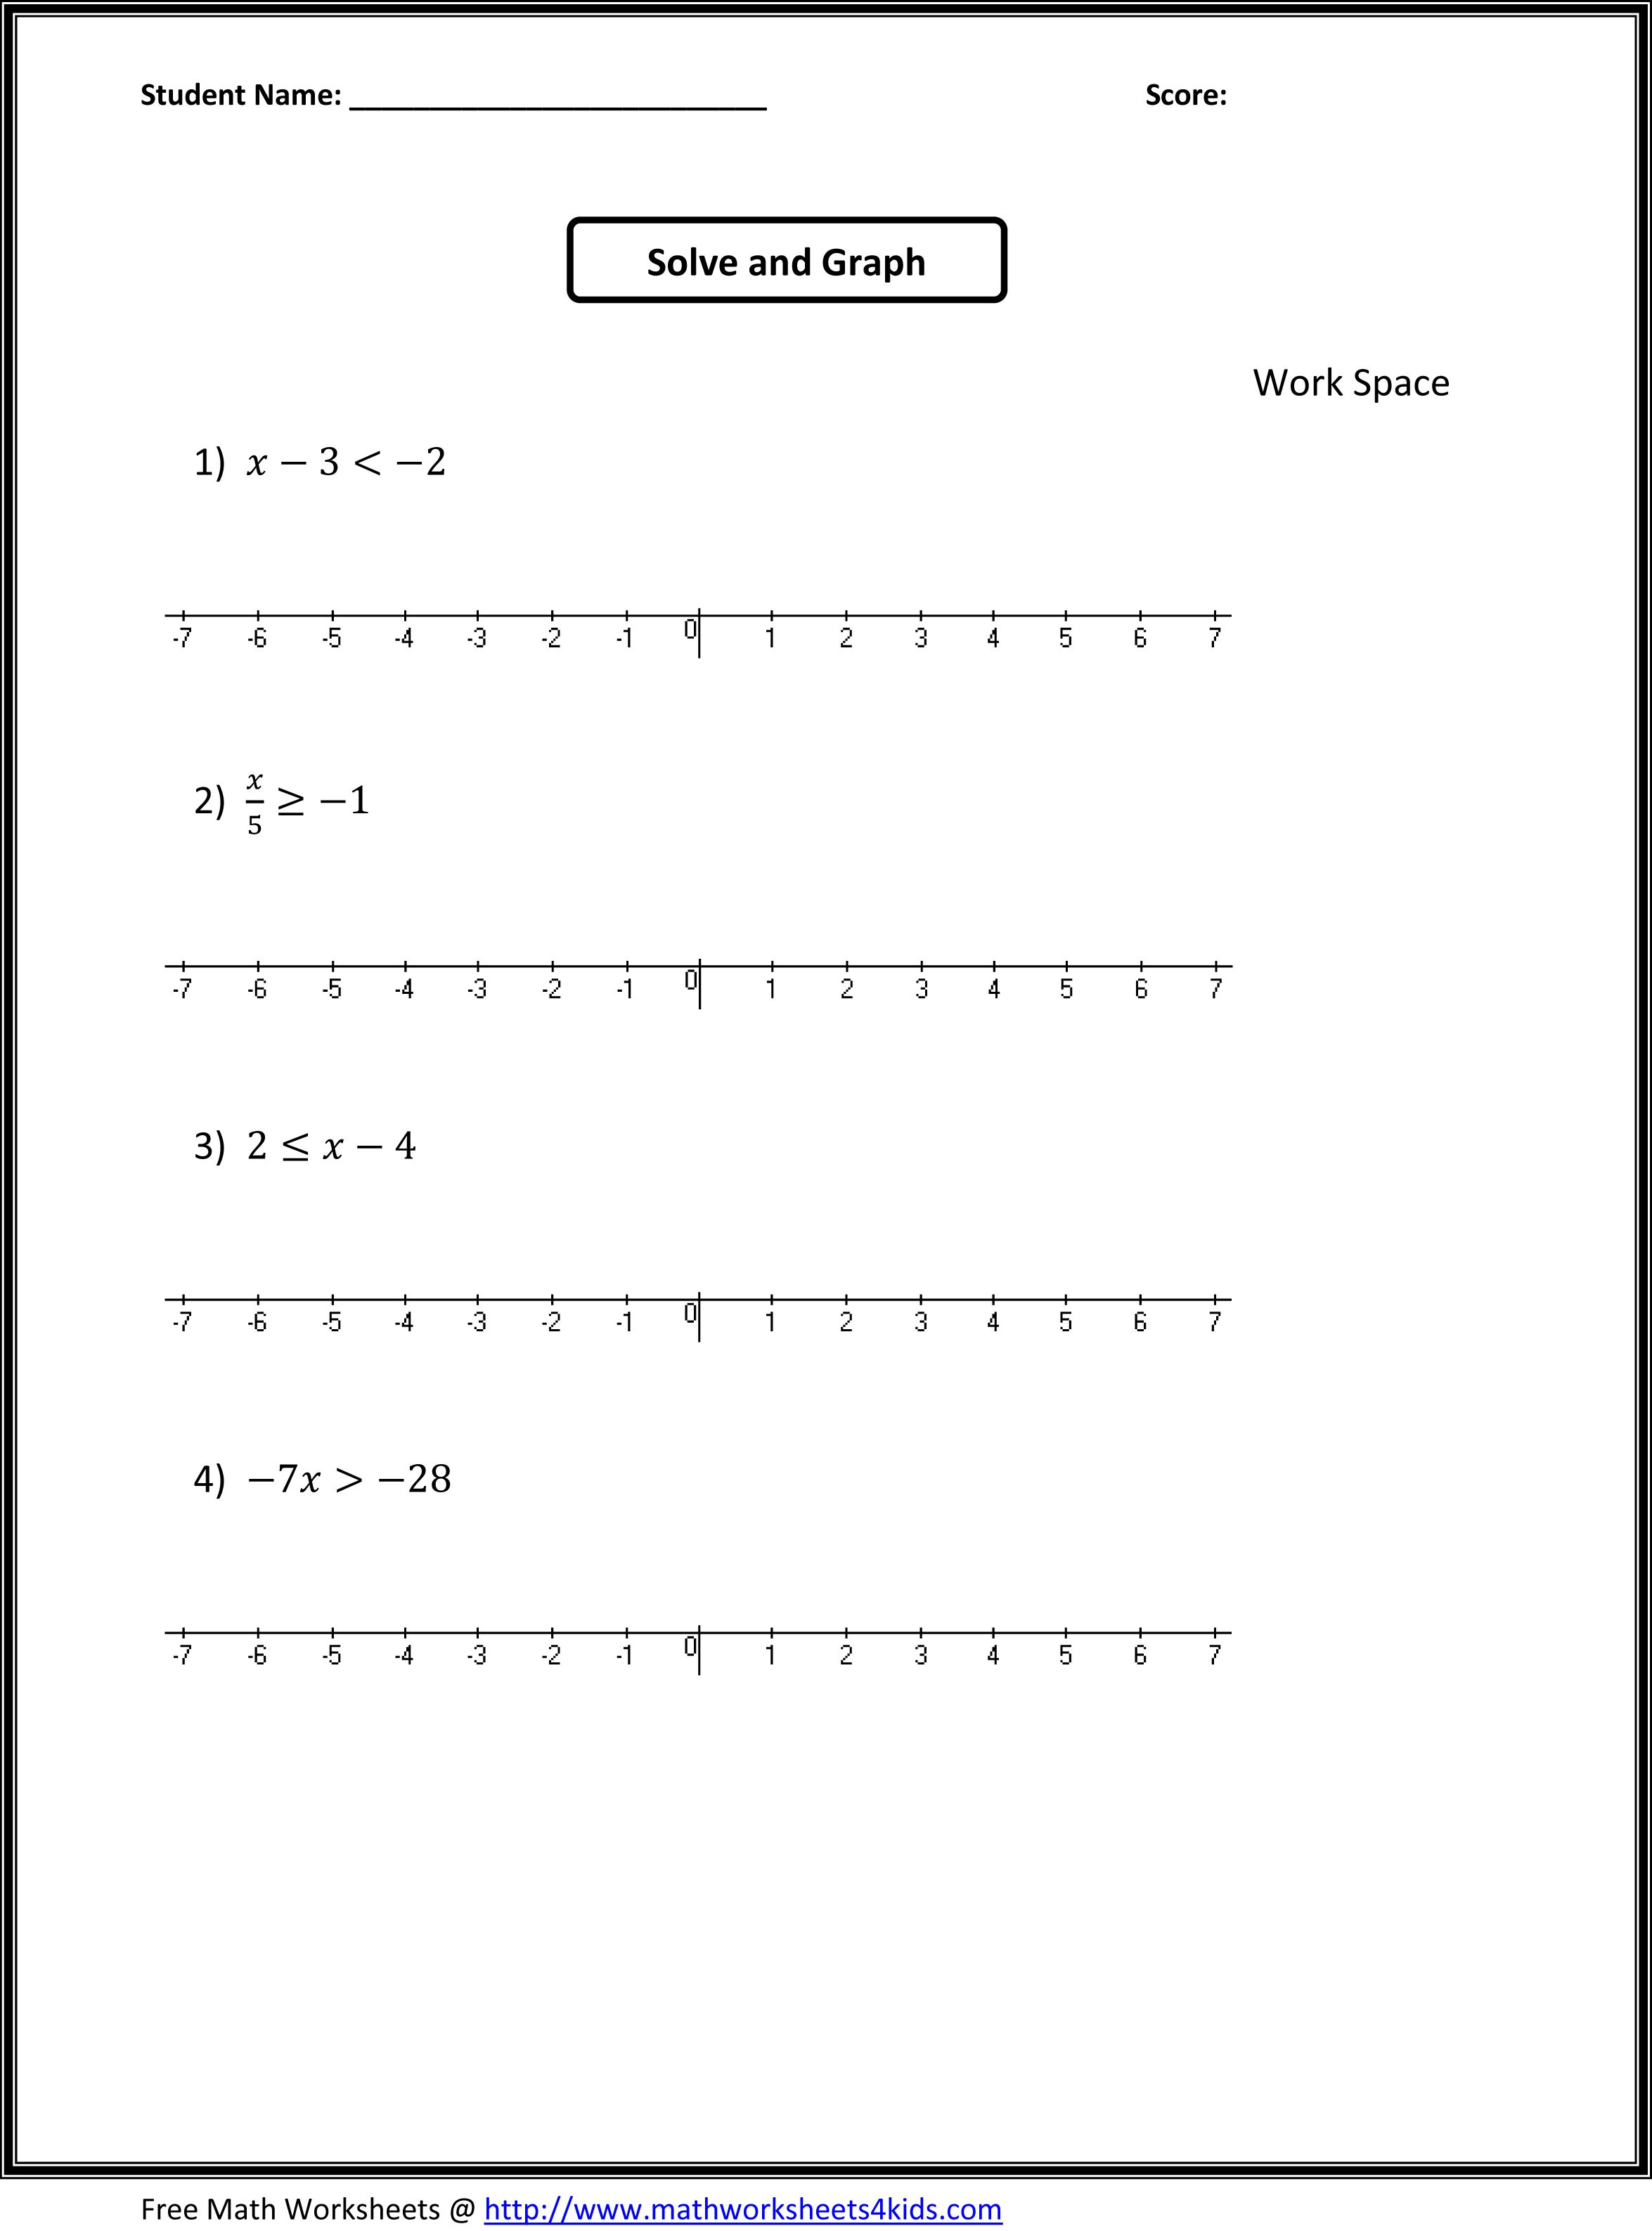 Worksheet 7th Grade Math Worksheets Printable 1000 images about math on pinterest activities printable worksheets and algebra worksheets